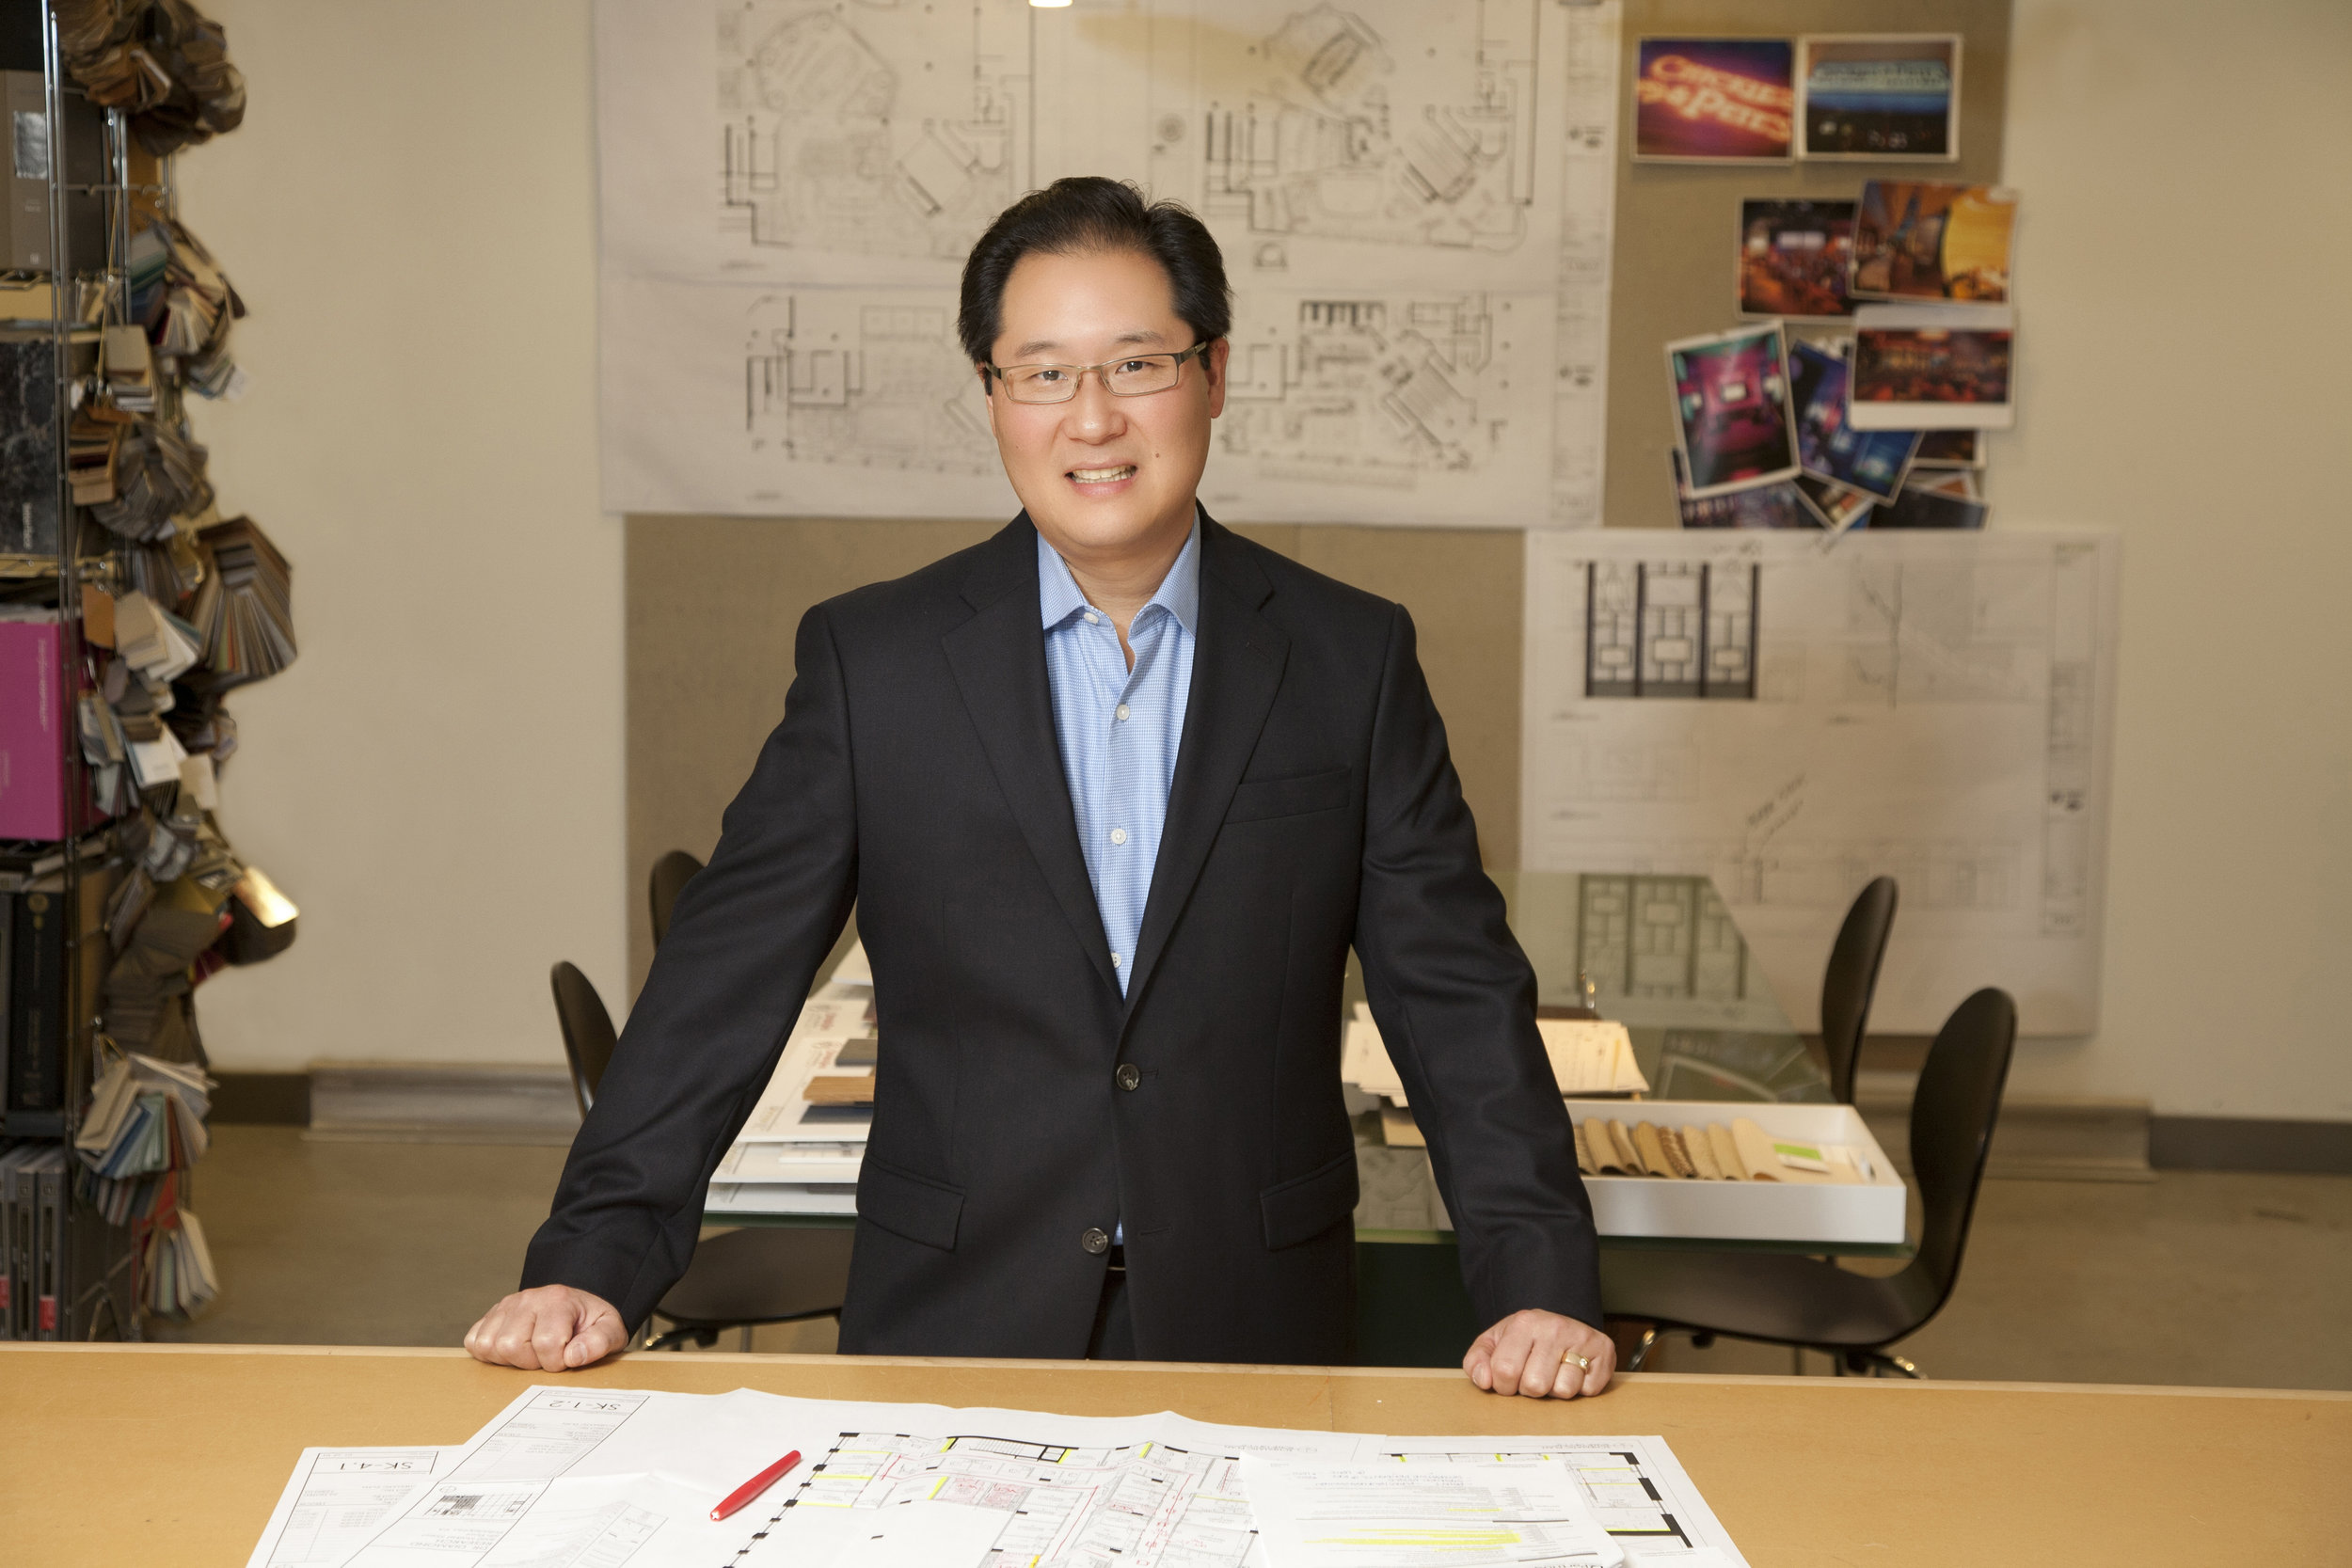 Harry Kim, IIDA  Principal  Harry focuses his strong project management skills and dedication to client satisfaction on commercial interiors projects and building accounts. Harry's corporate experience spans law firms to non-profits to government work and includes the regional headquarters for engineering firm Parsons in Washington, DC; law offices for Offit Kurman in multiple locations in PA and MD; the Federal Community Defender Office for the Eastern District of Pennsylvania; and the Philadelphia office of software development firm OSIsoft. He also oversees the accounts for a number of prominent Center City Philadelphia high-rise commercial office buildings including 2 Liberty Place, One Penn Center and 2000 Market Street. Harry holds a BS Interior Design from Drexel University and is NCIDQ-Certified.